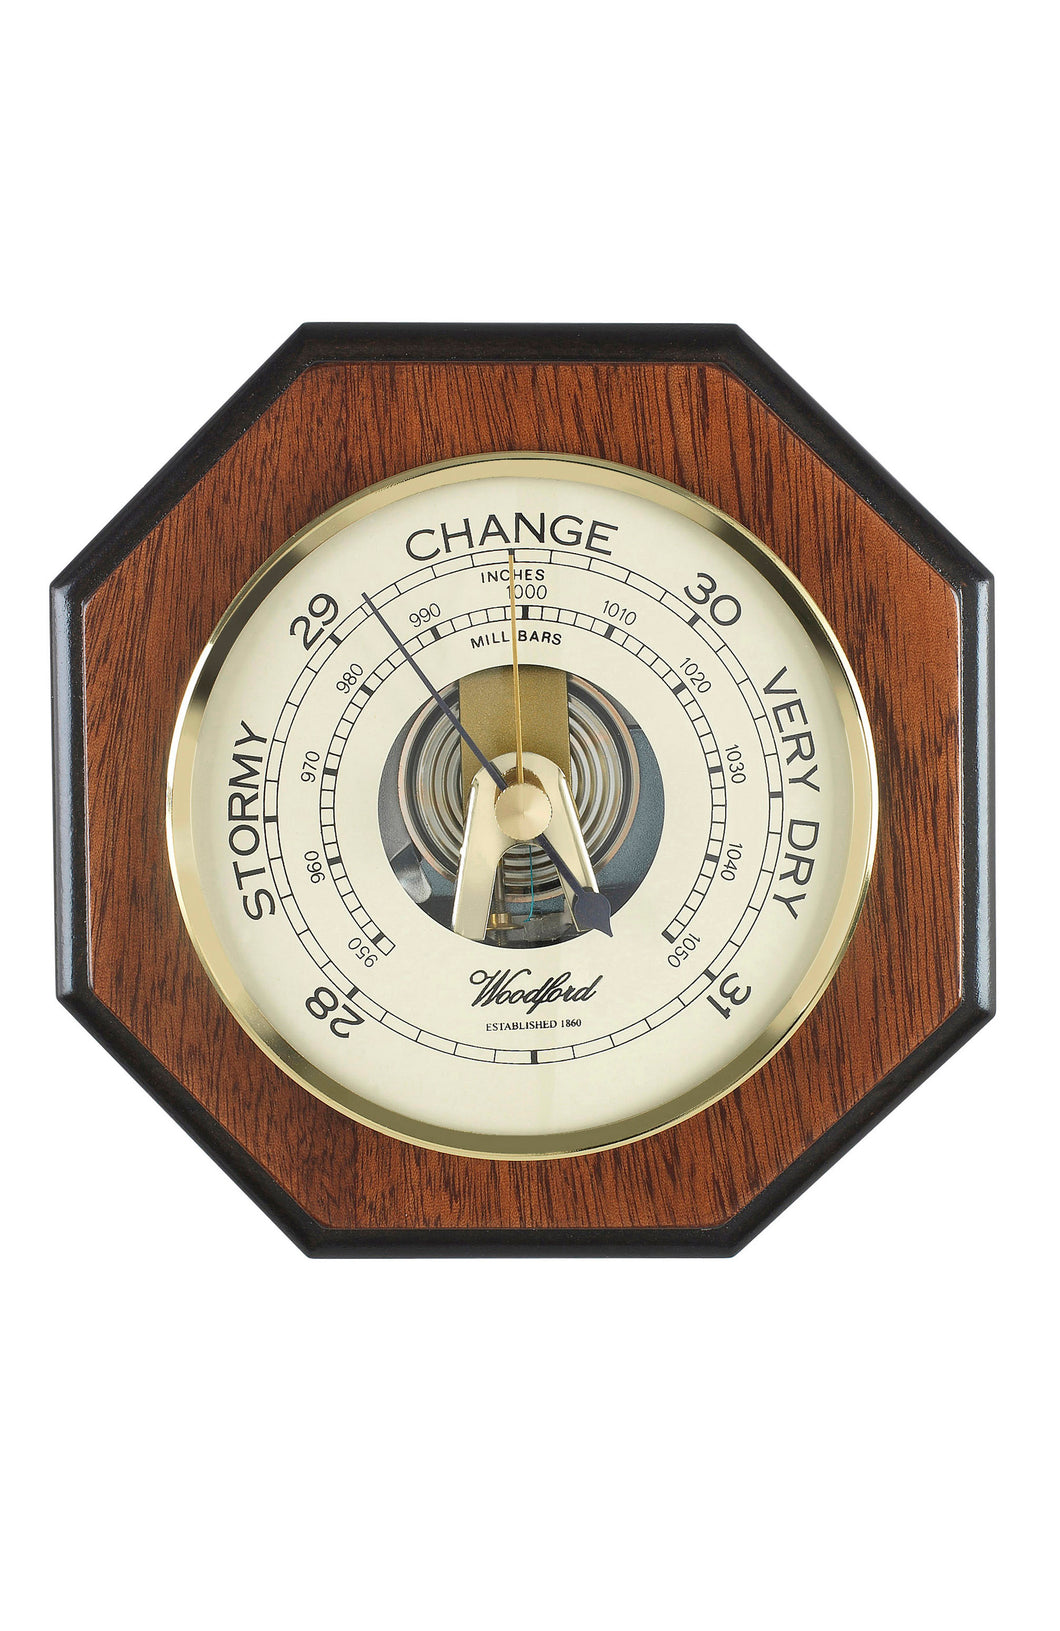 Octagon Shaped Wooden Wall Barometer